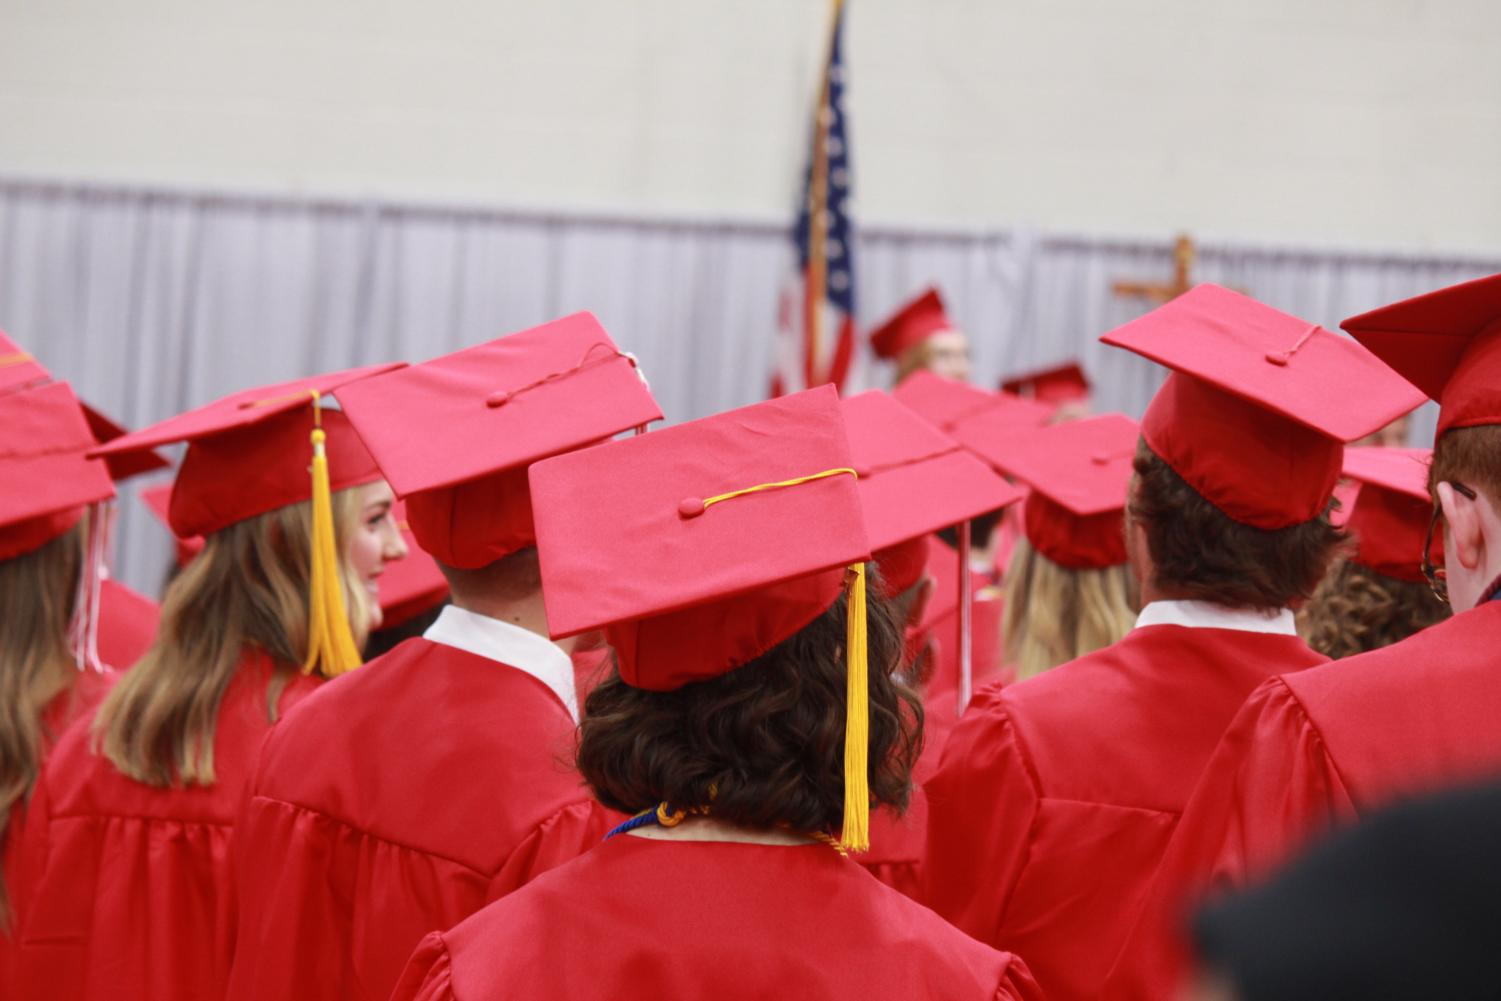 After graduation, most BSM students attend college, but what that will look like next year is anyone